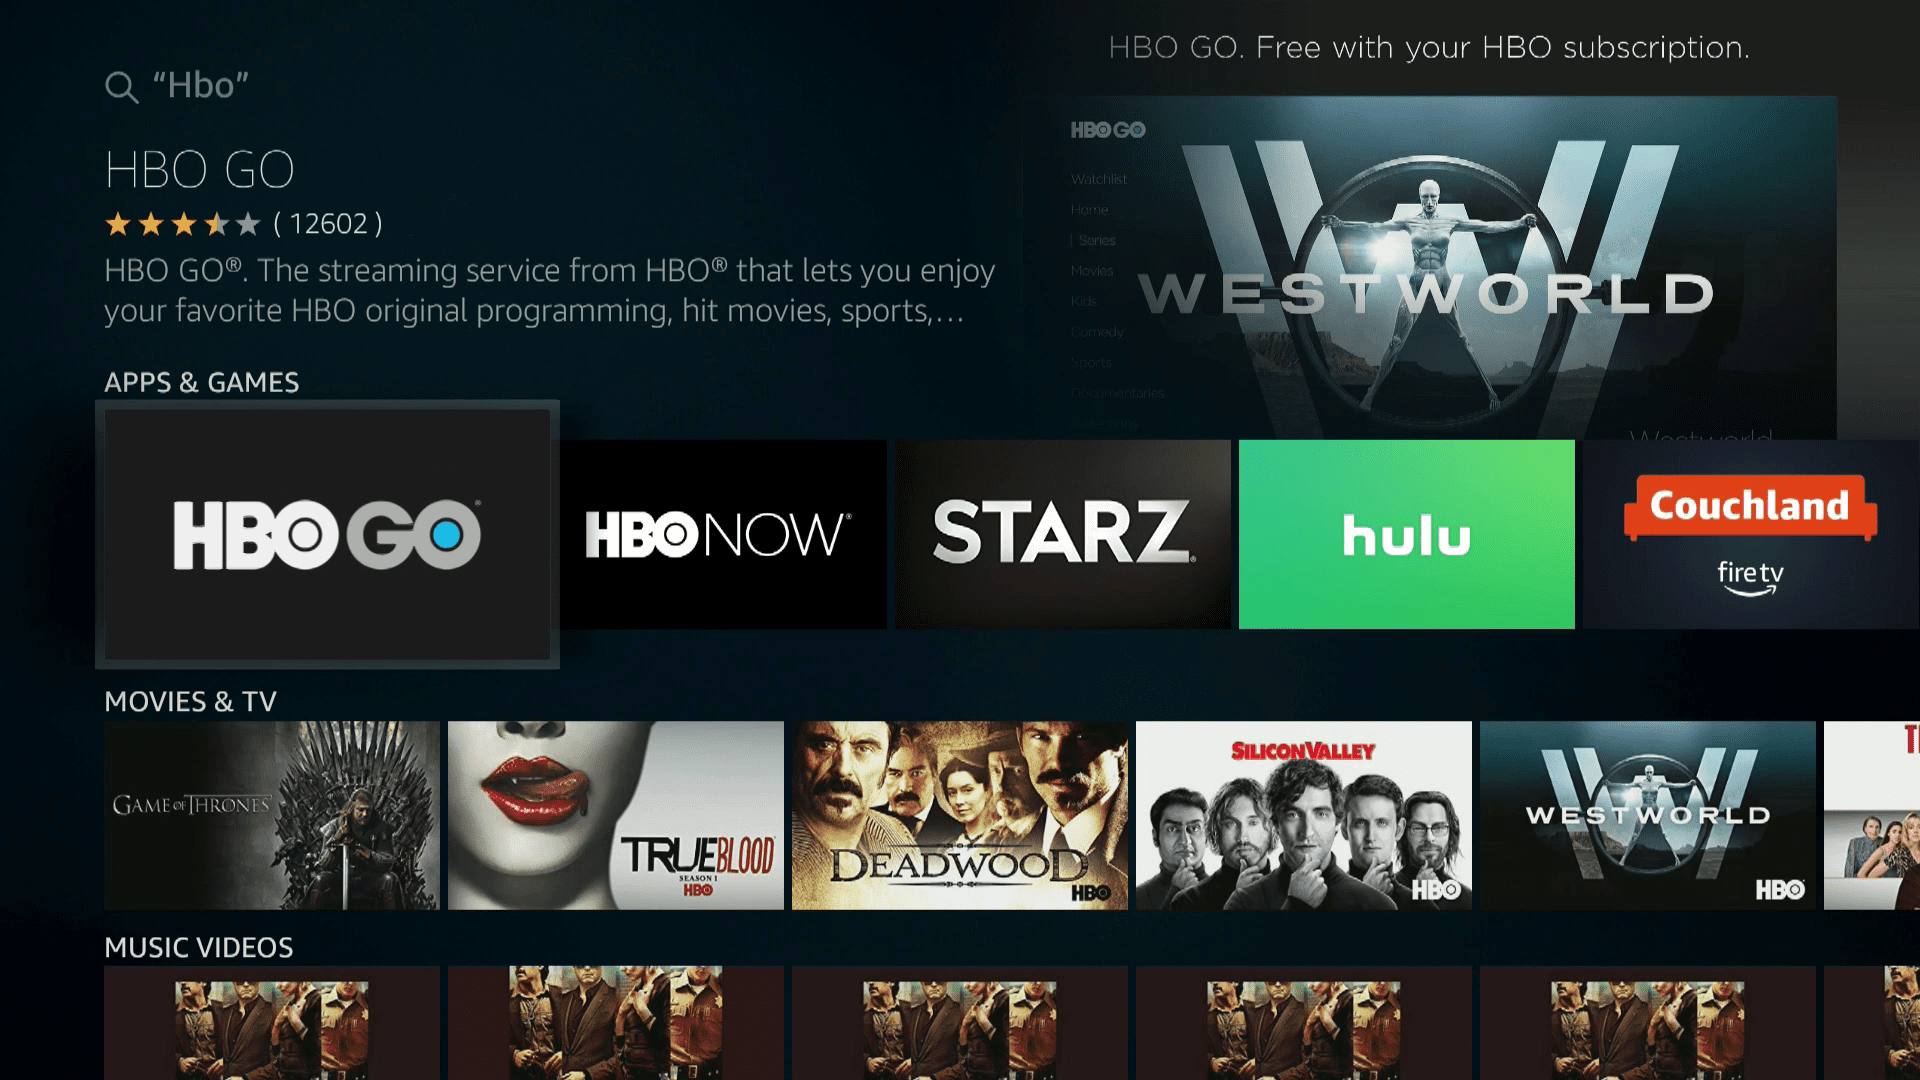 How to Download Apps on a Fire TV Stick